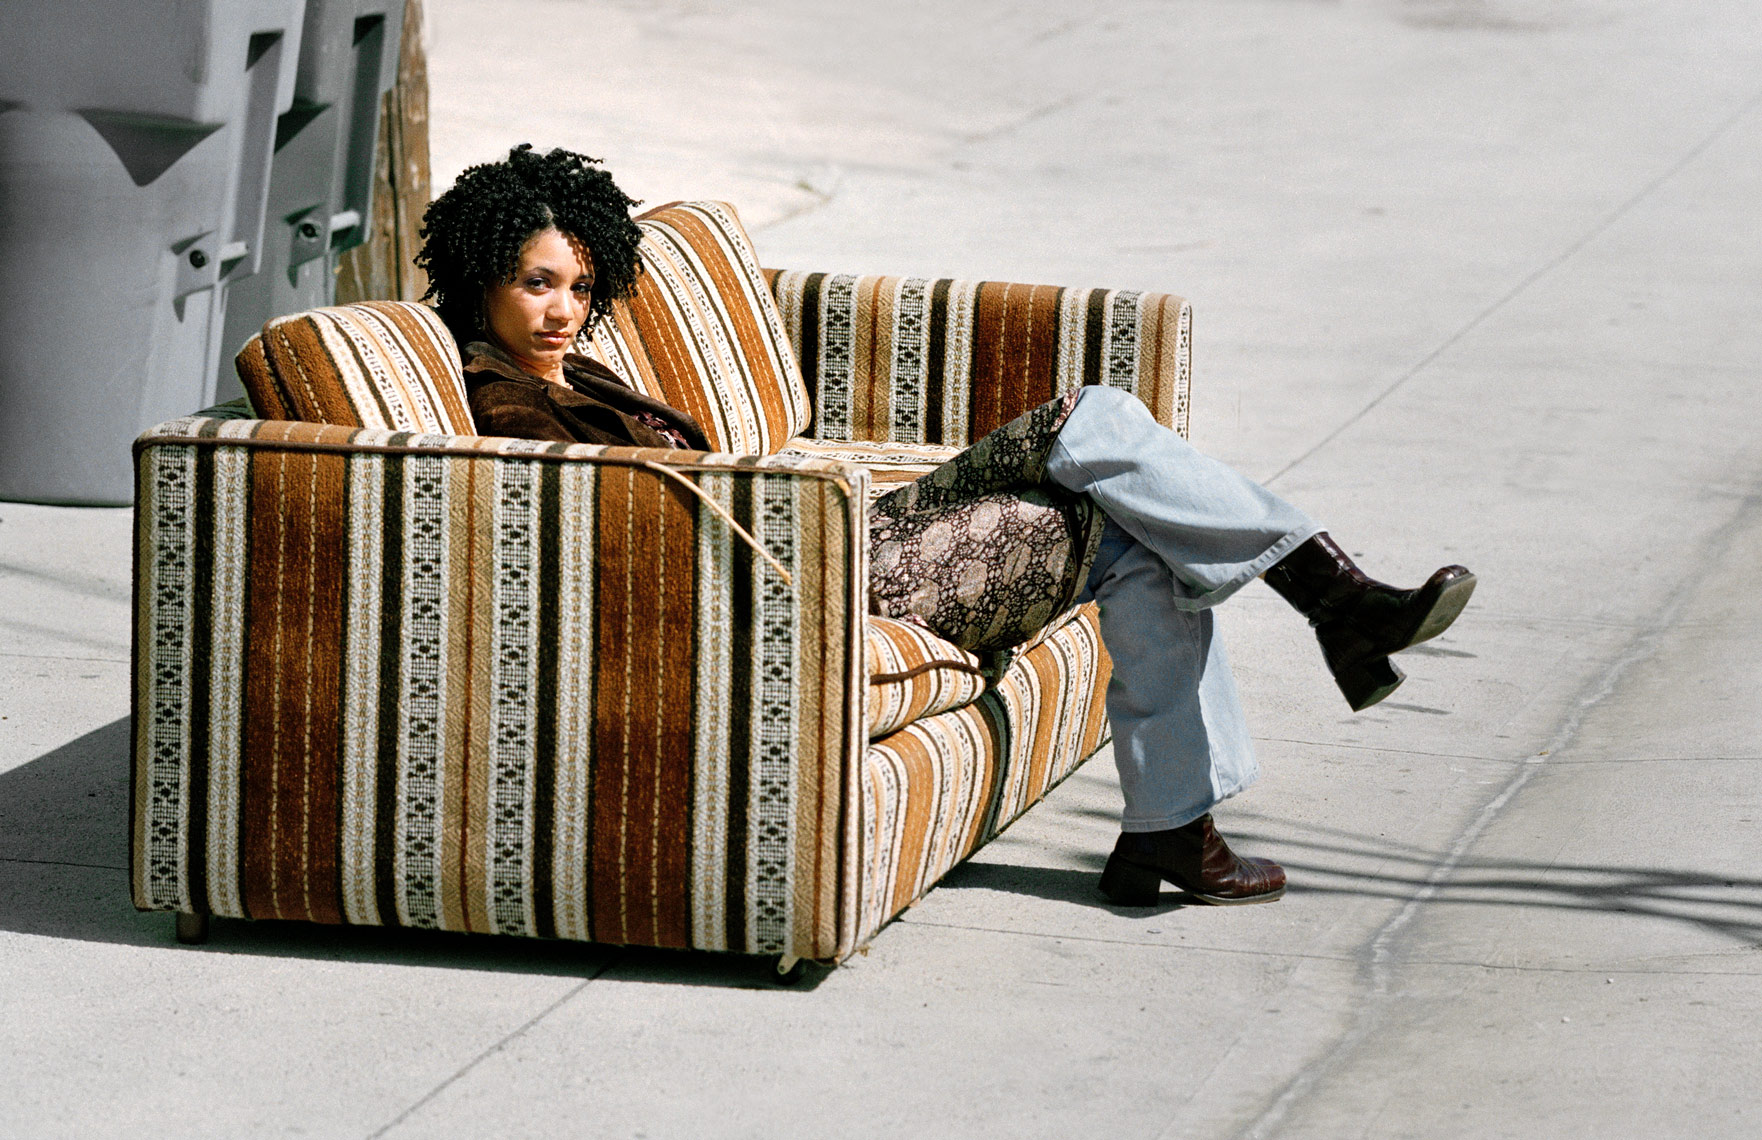 WEB_8.4_Woman-on-Couch-in-Alley